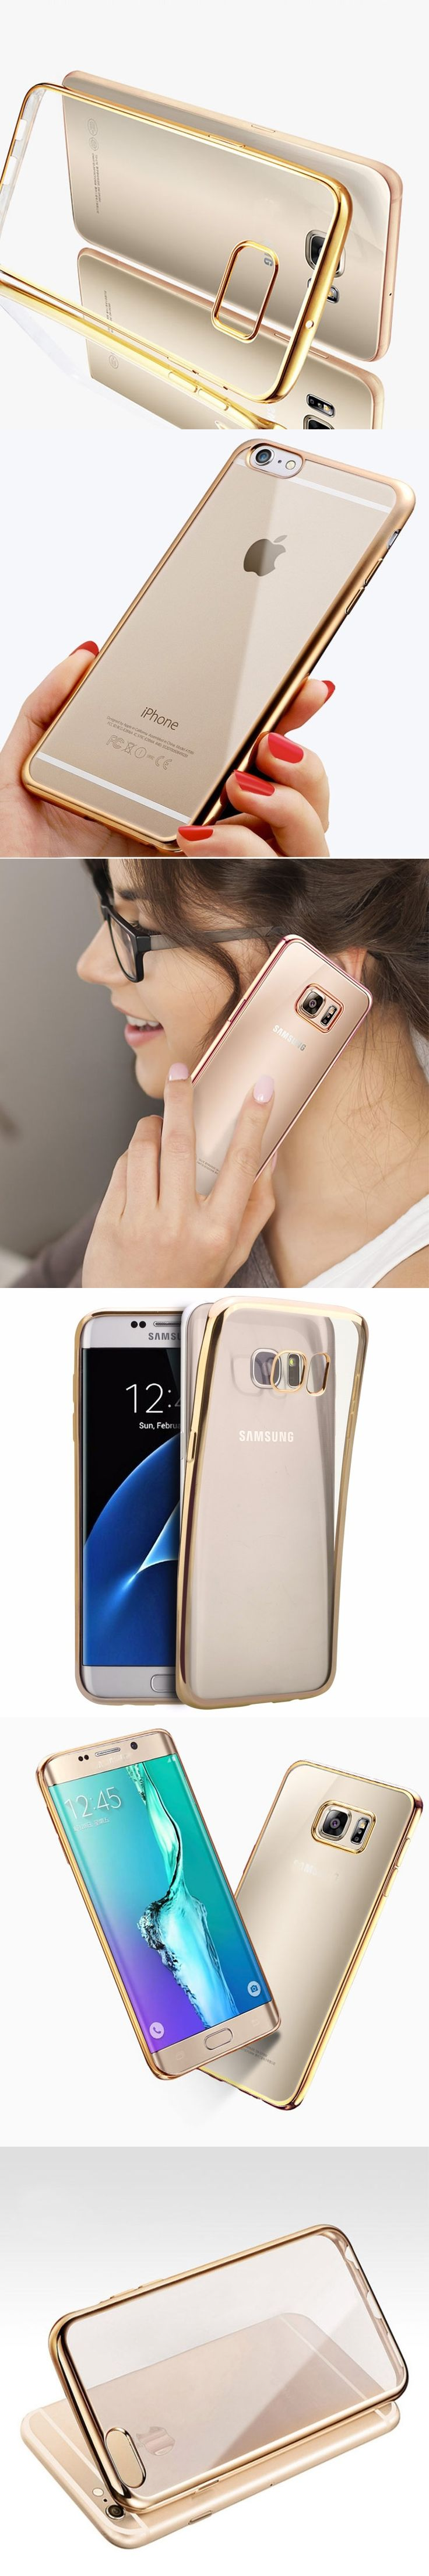 For Samsung GalaxyS6s6 Edge Plus mobile phone case all-inclusive S7edge Slim Crystal ultra-thin gold explosion-proof phone shell